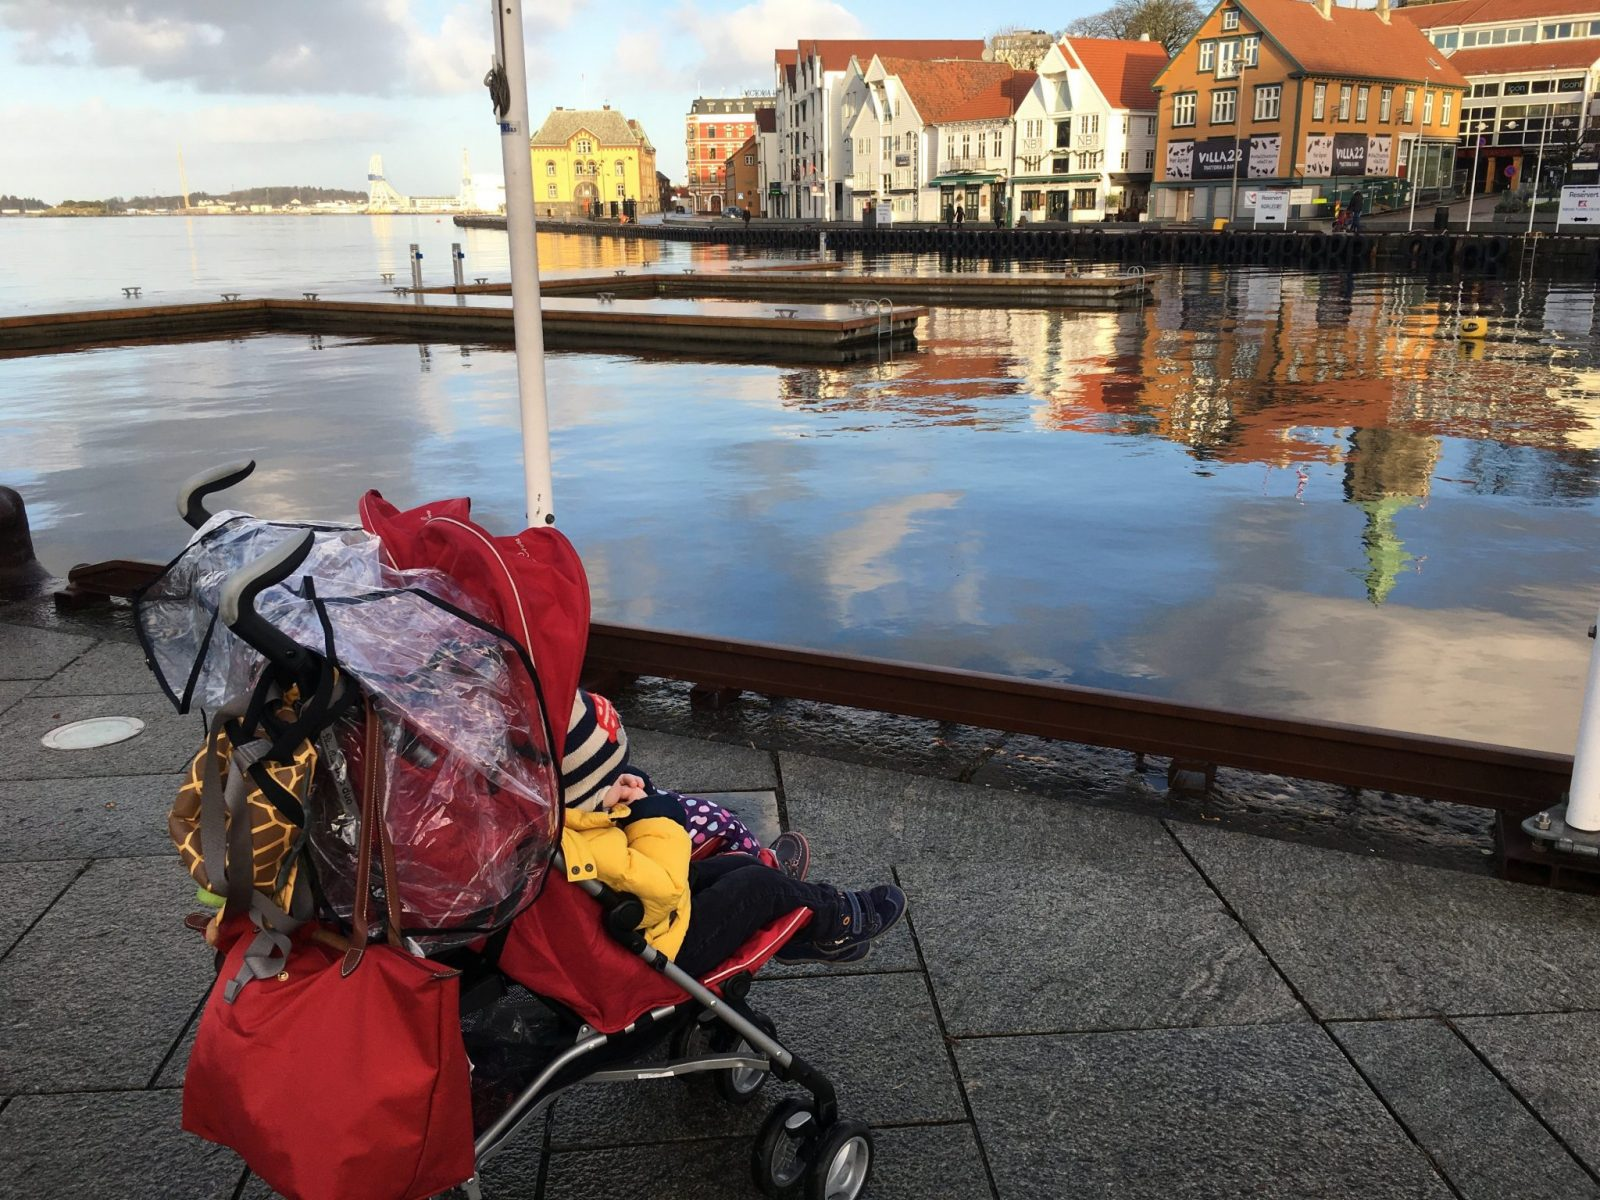 Things to do with kids in Stavanger